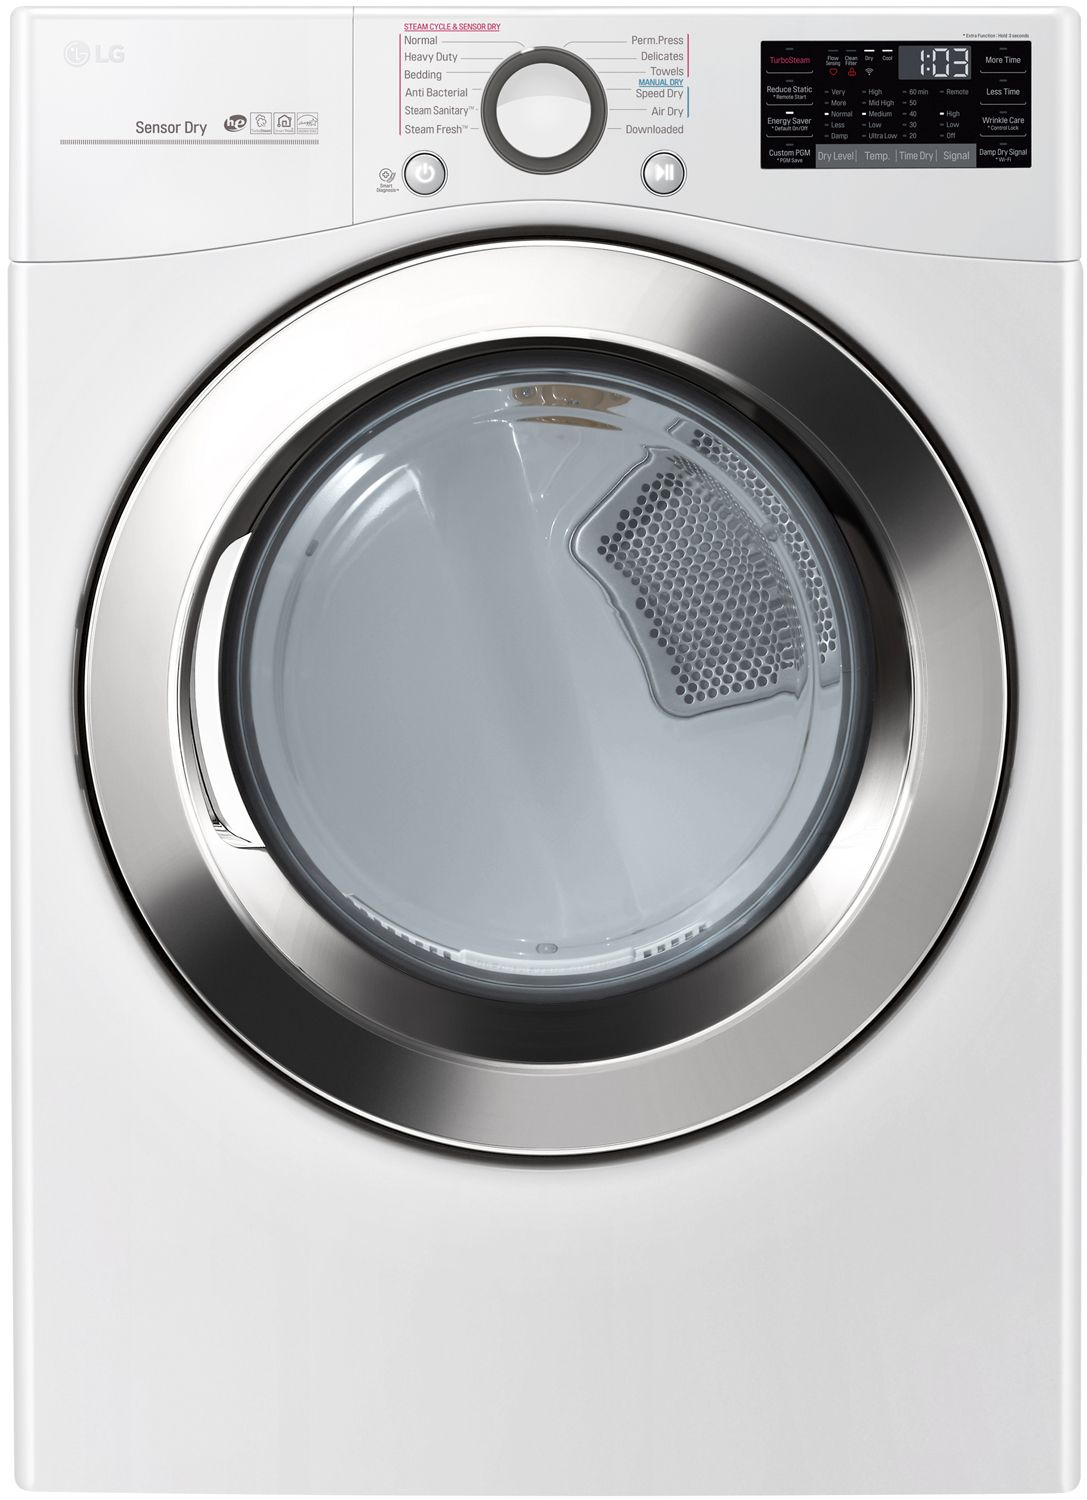 Abt Com Lg Dlgx3701w In 2020 Lg Washer And Dryer Washer Dryer Set Cool Things To Buy